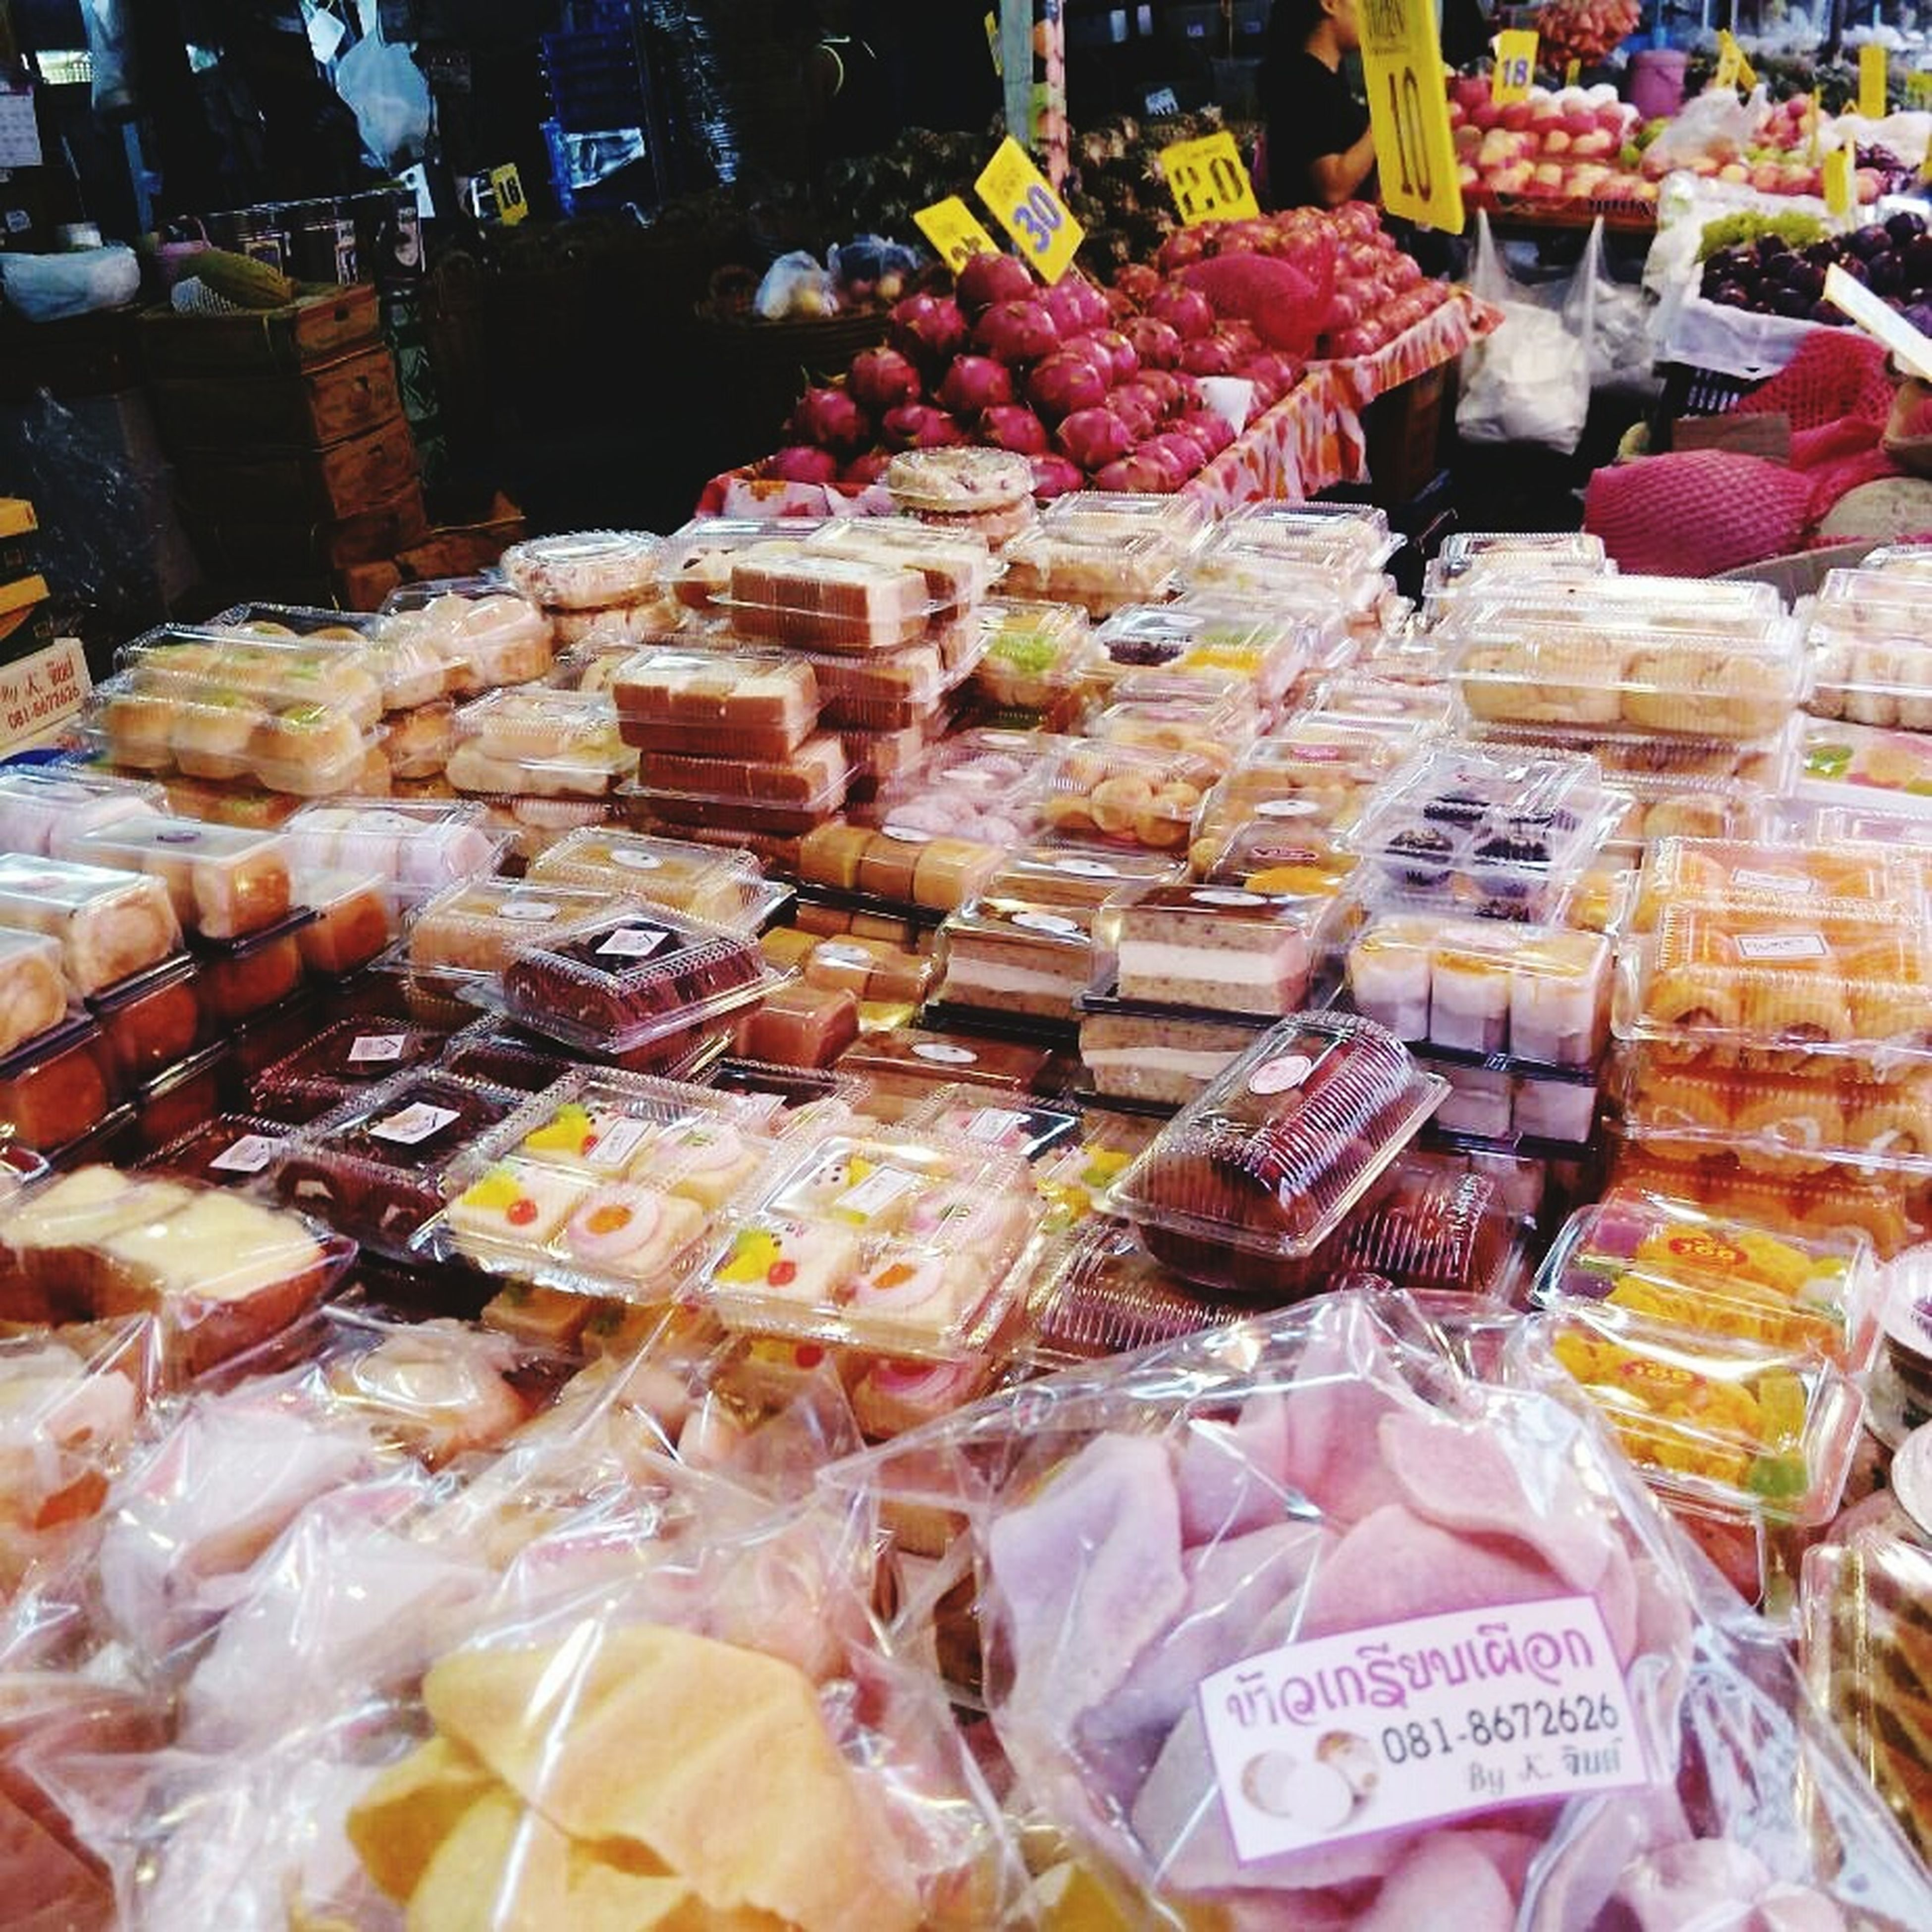 food, food and drink, choice, retail, for sale, variation, market, no people, freshness, large group of objects, indoors, price tag, day, healthy eating, sweet food, close-up